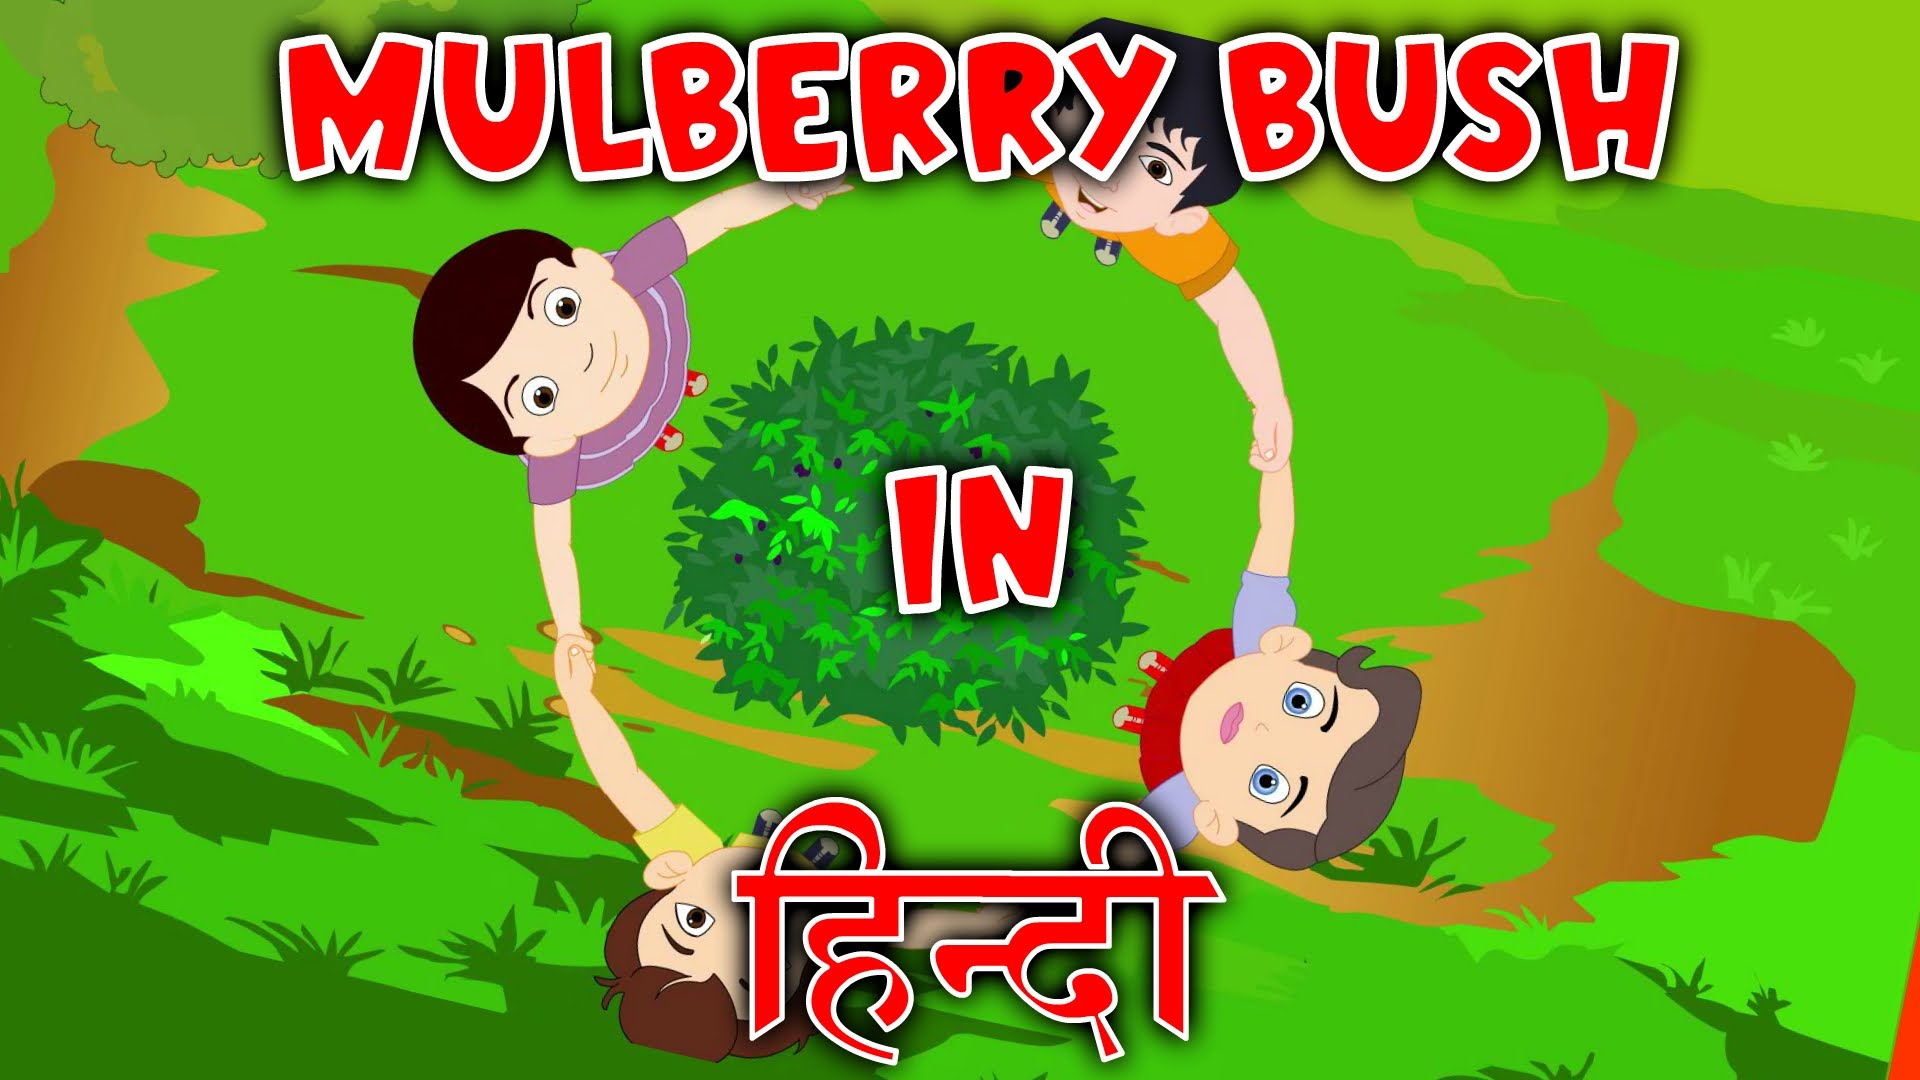 Bushes clipart mulberry bush. Here we go round